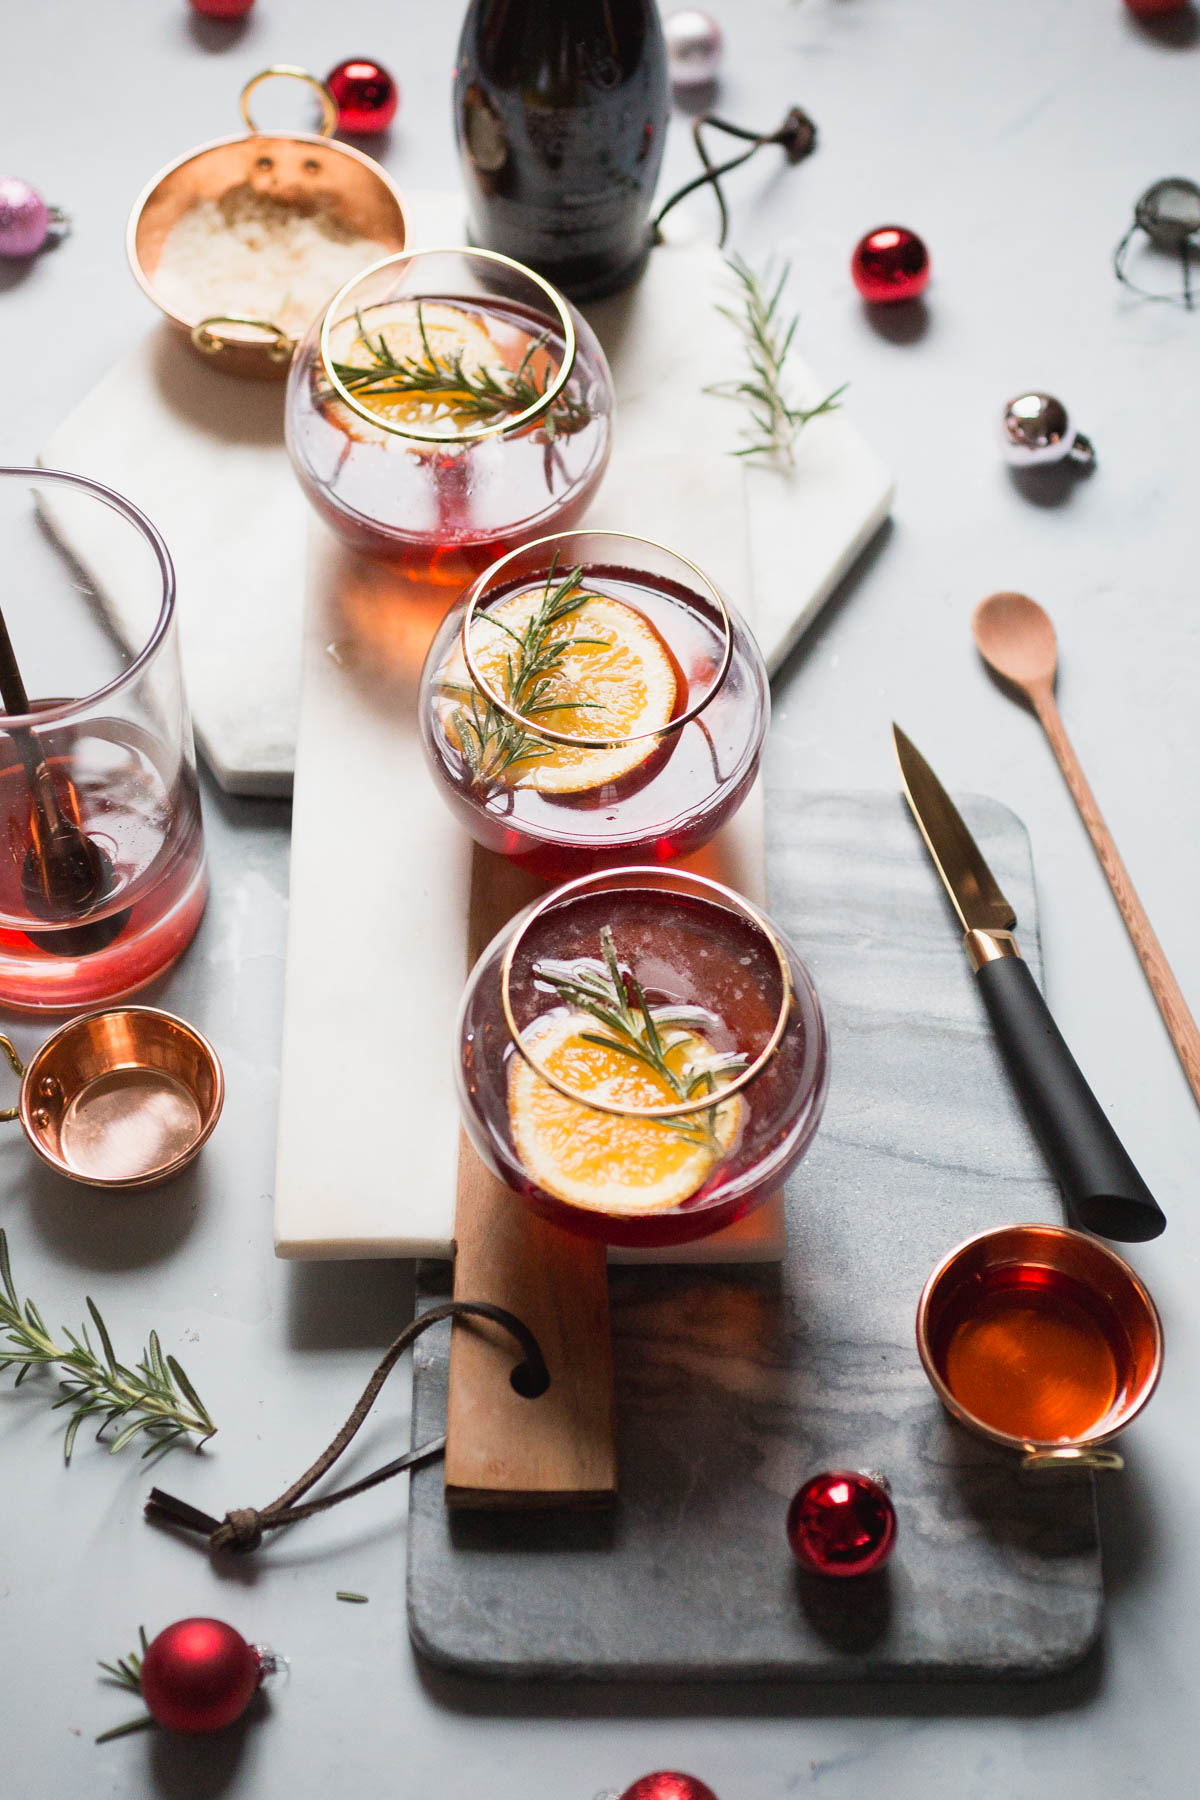 Cranberry Orange Champagne Mimosa with Candied Rosemary